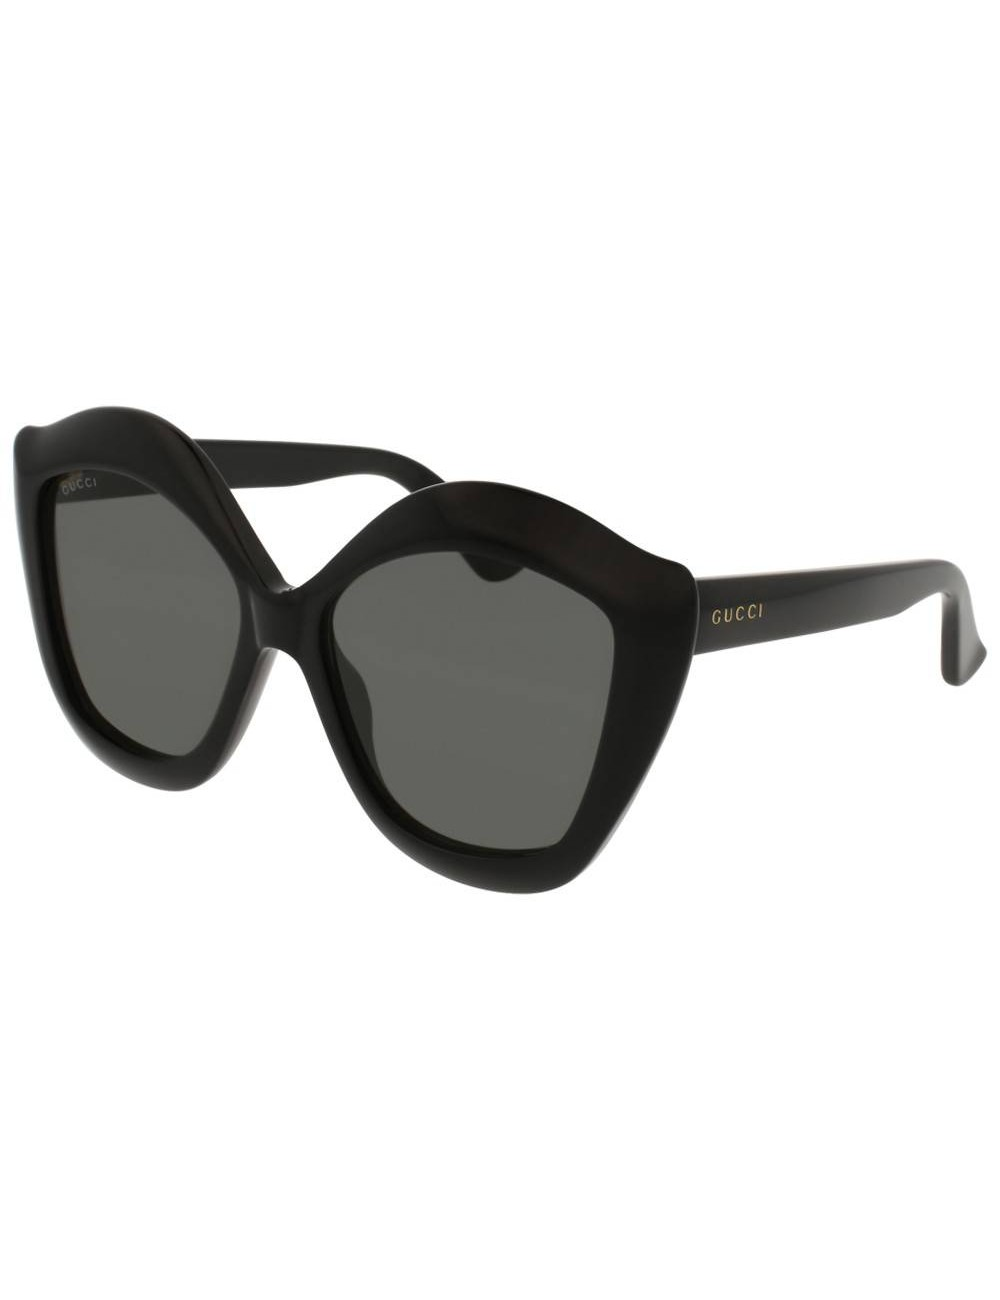 Lunettes de soleil Gucci Fashion Inspired GG0117S